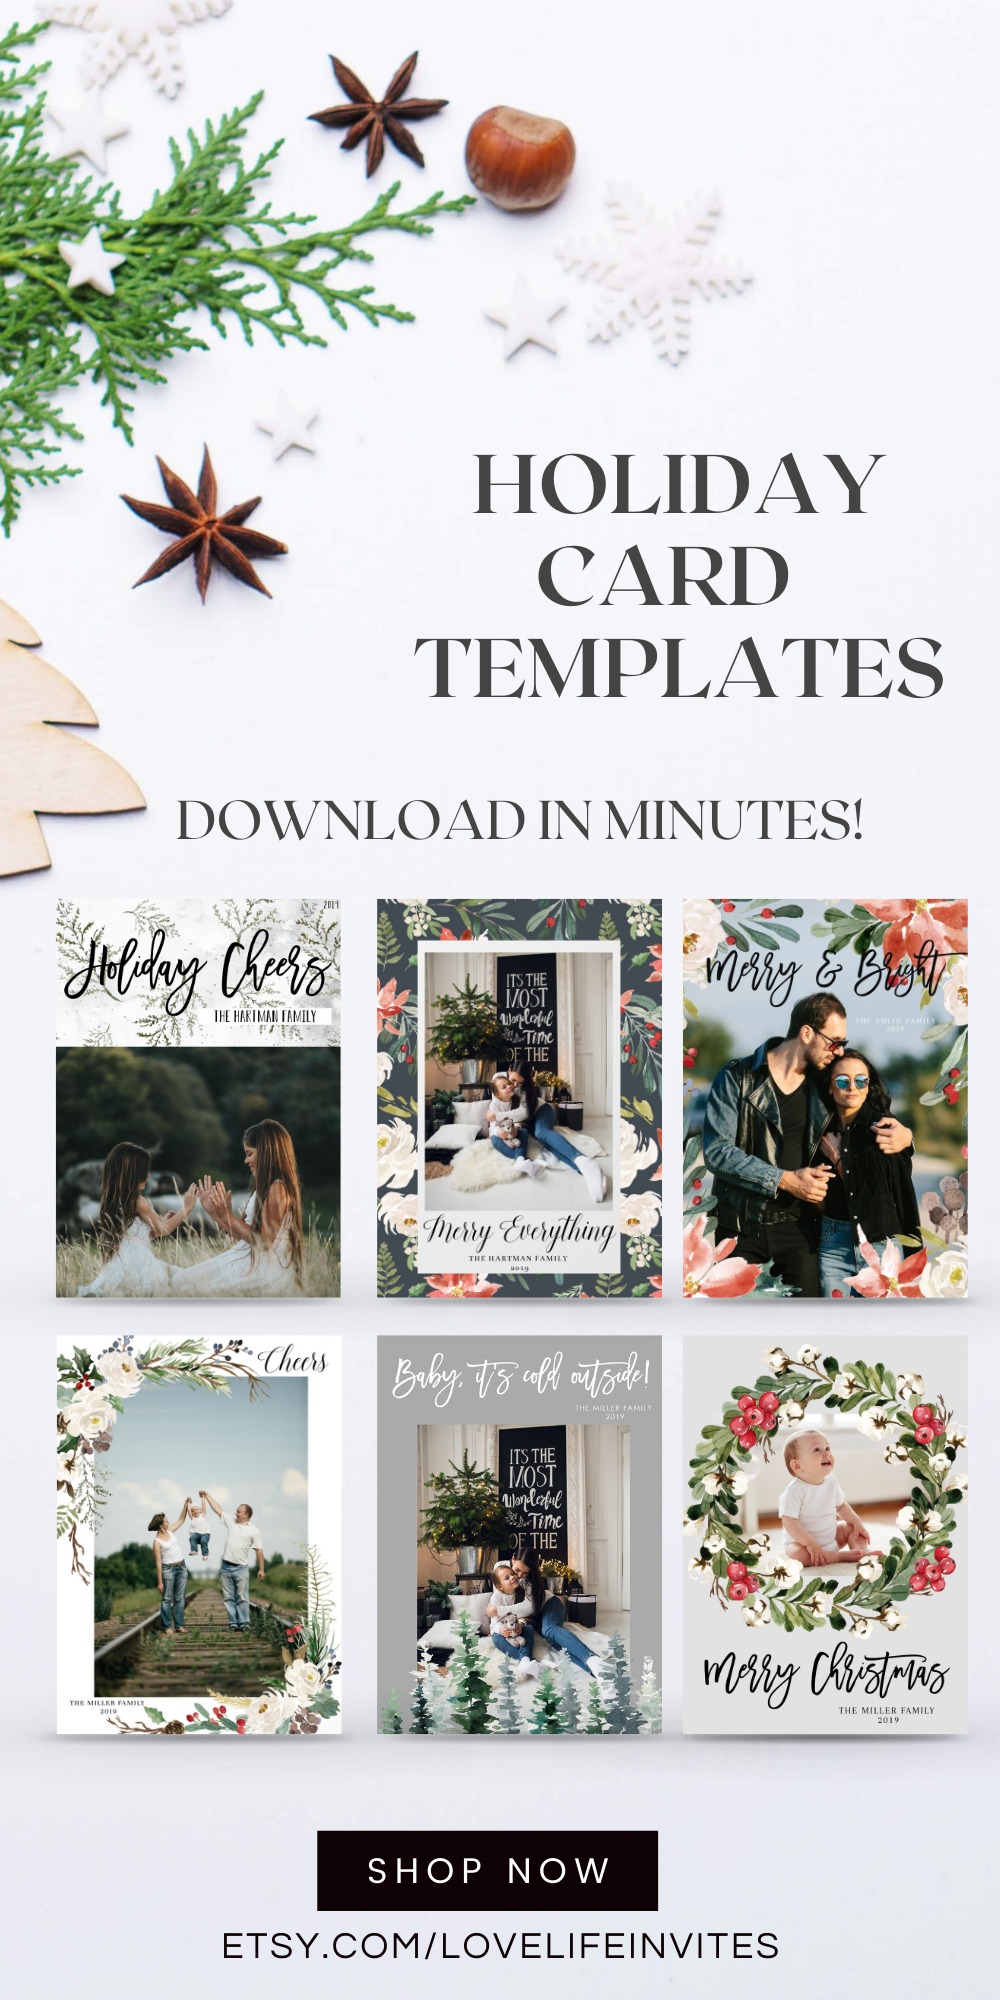 Holiday Card Templates Holiday Card Template Custom Christmas Cards Holiday Card Pictures